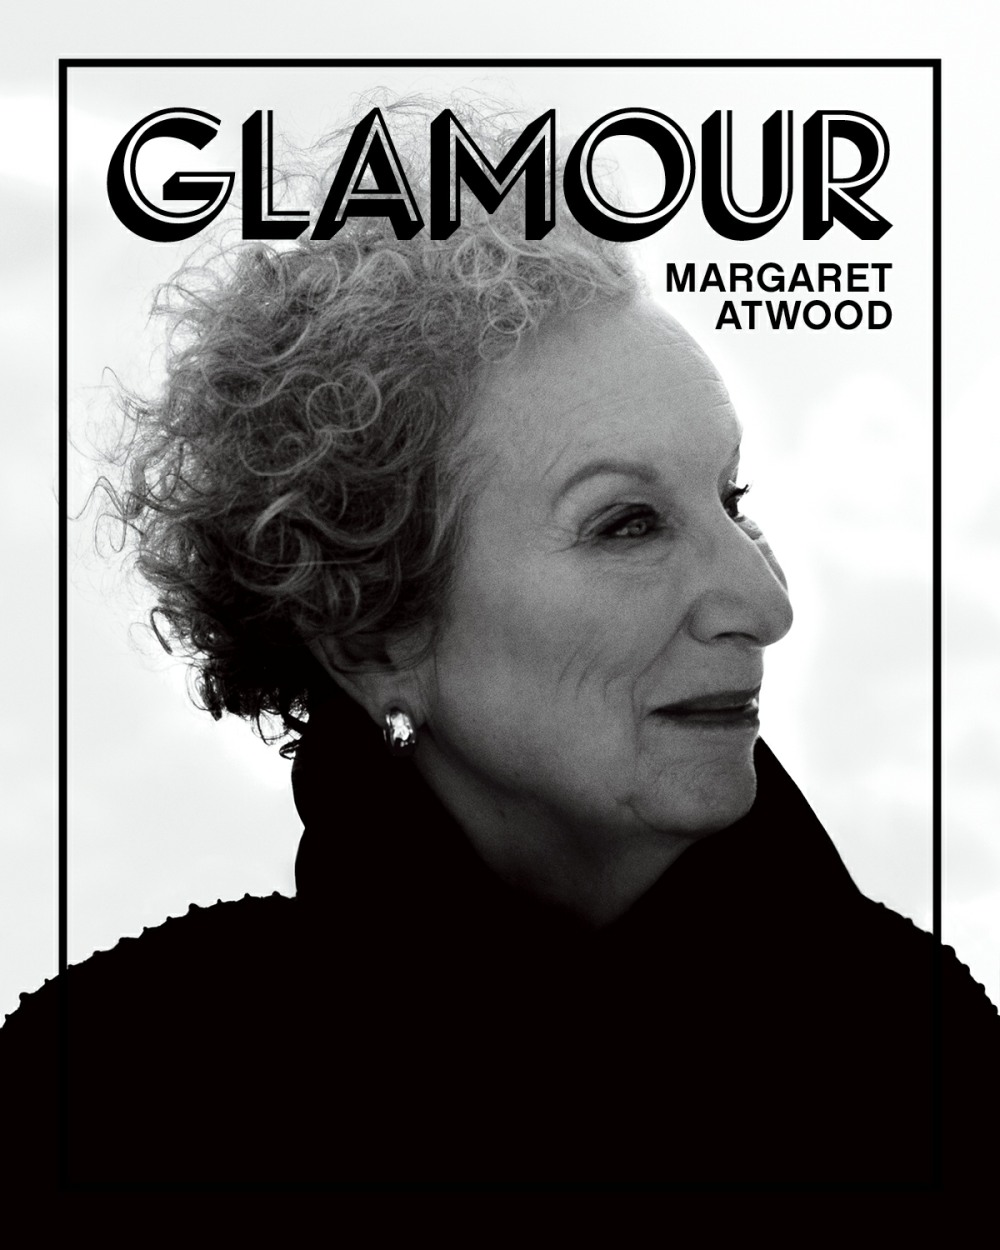 Margaret Atwood on politics today: 'It's been worse' in previous eras